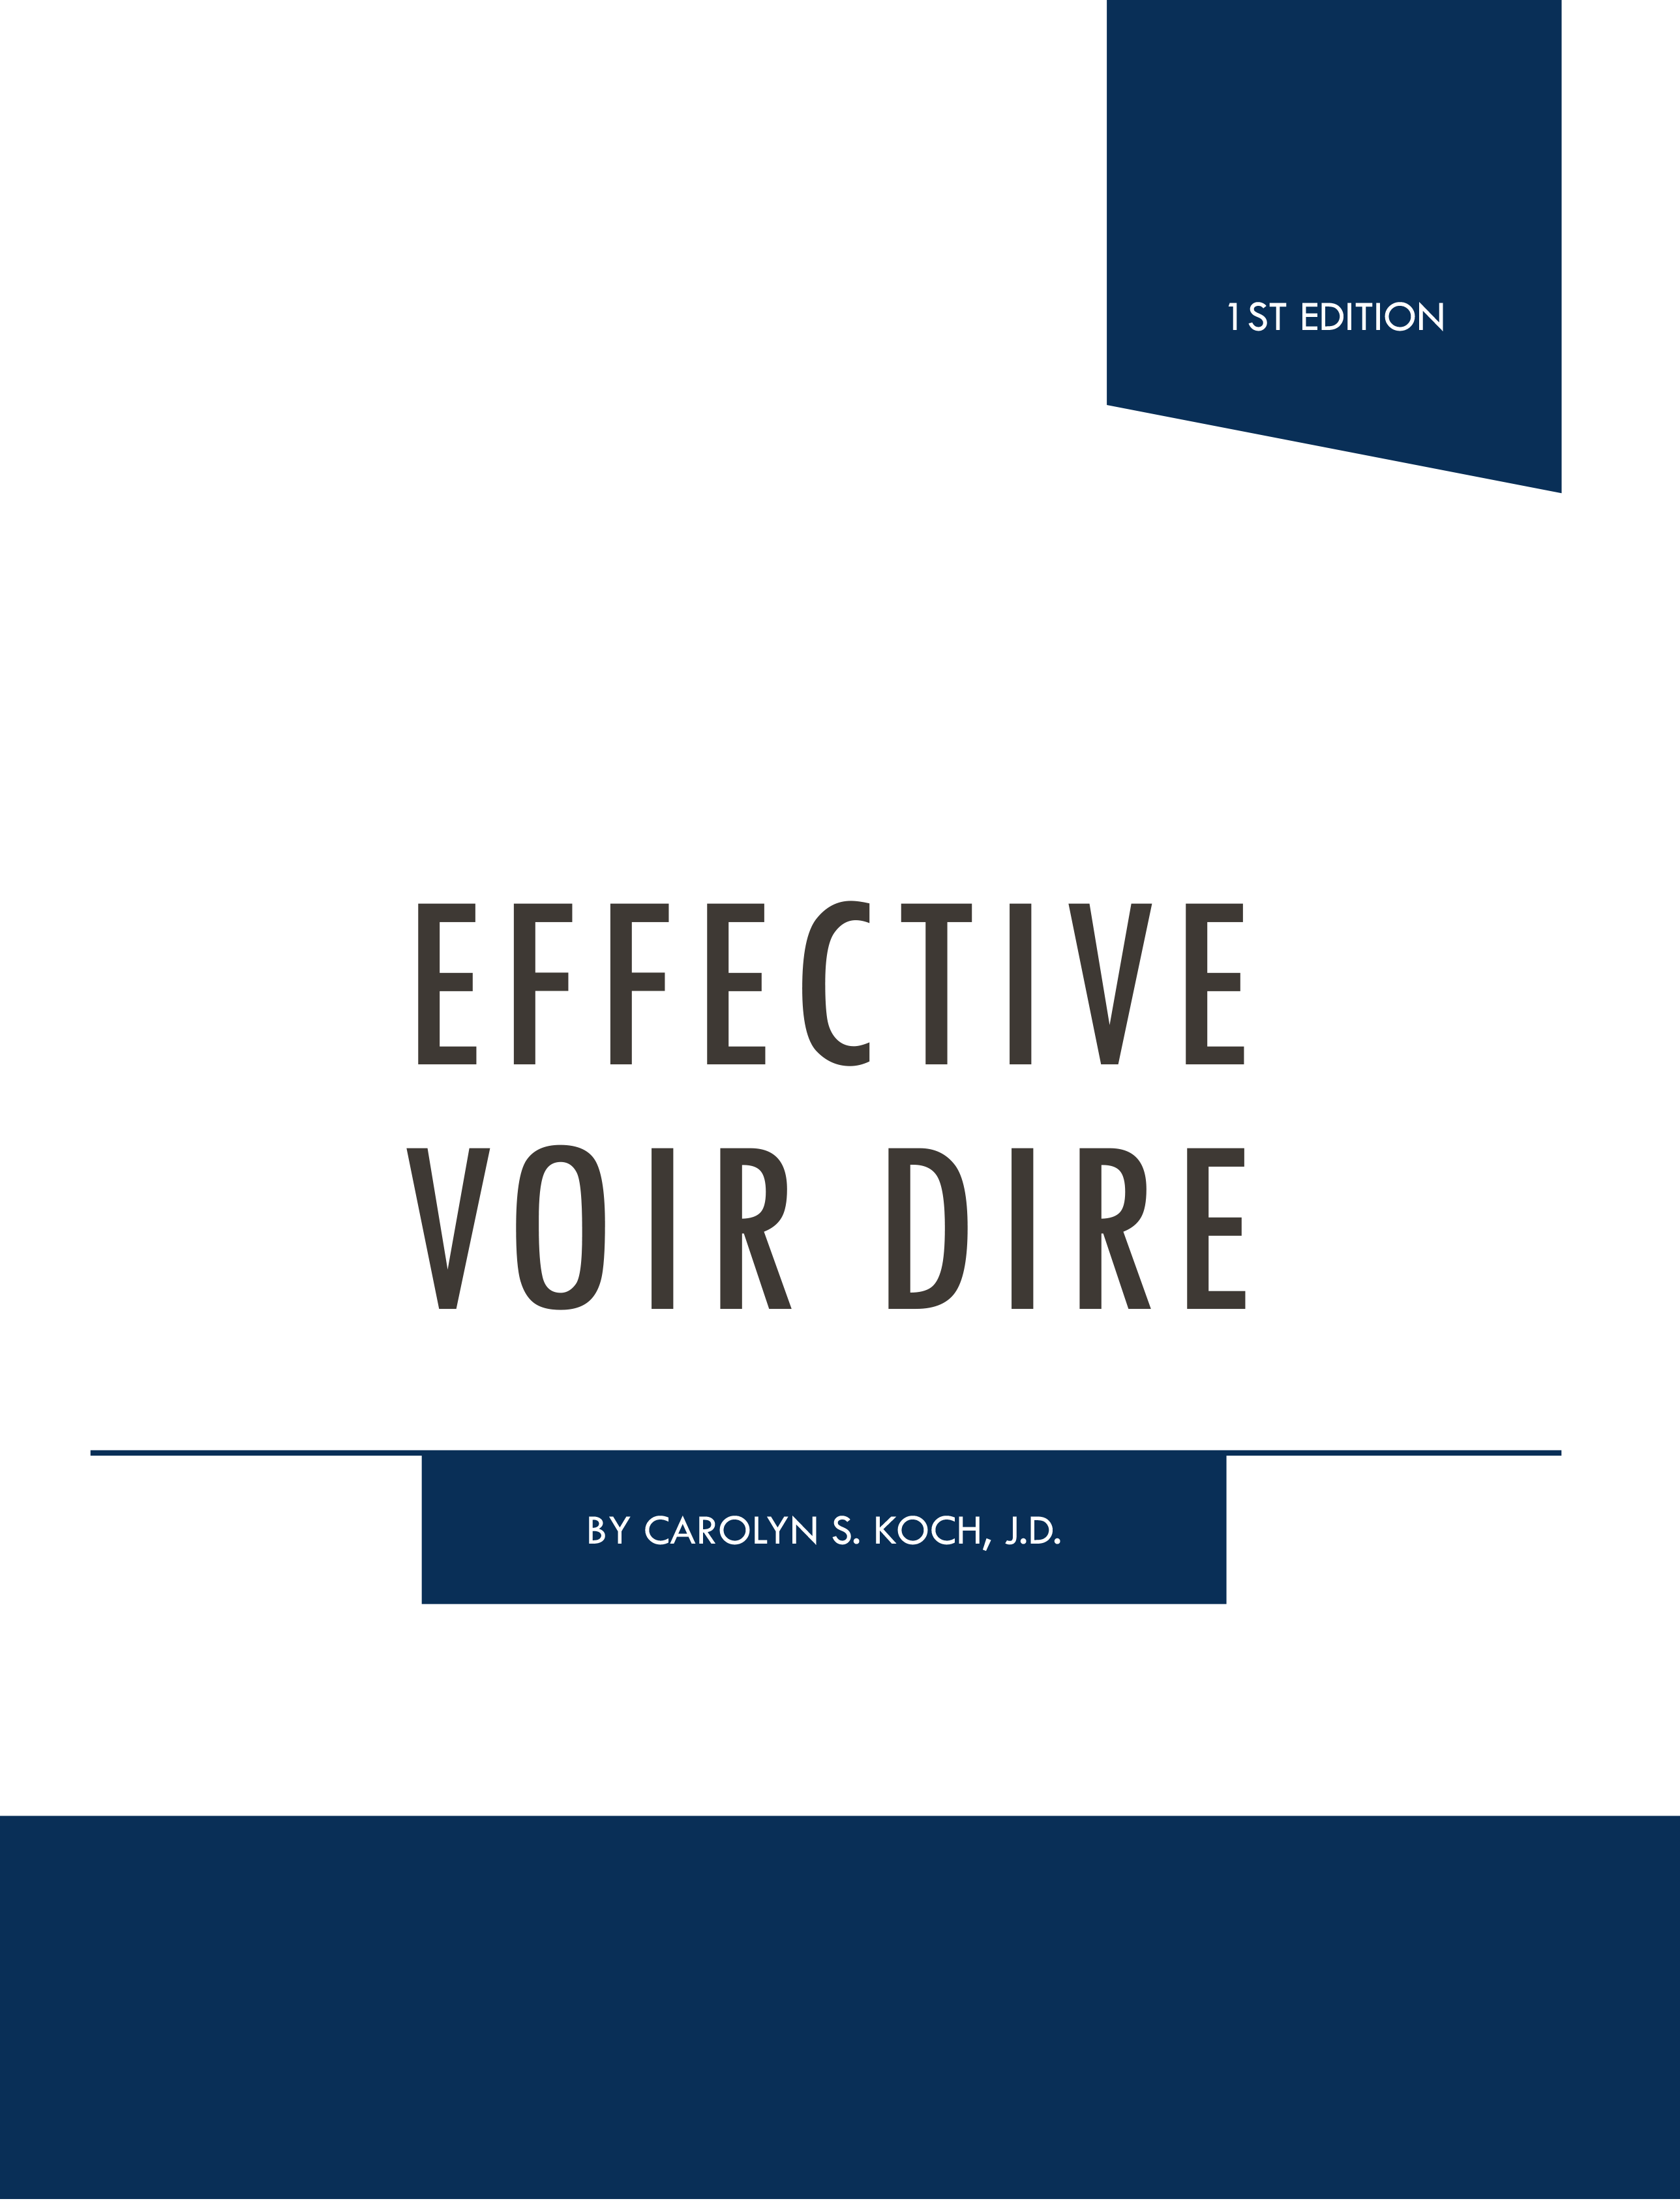 effective voir dire book by carolyn koch